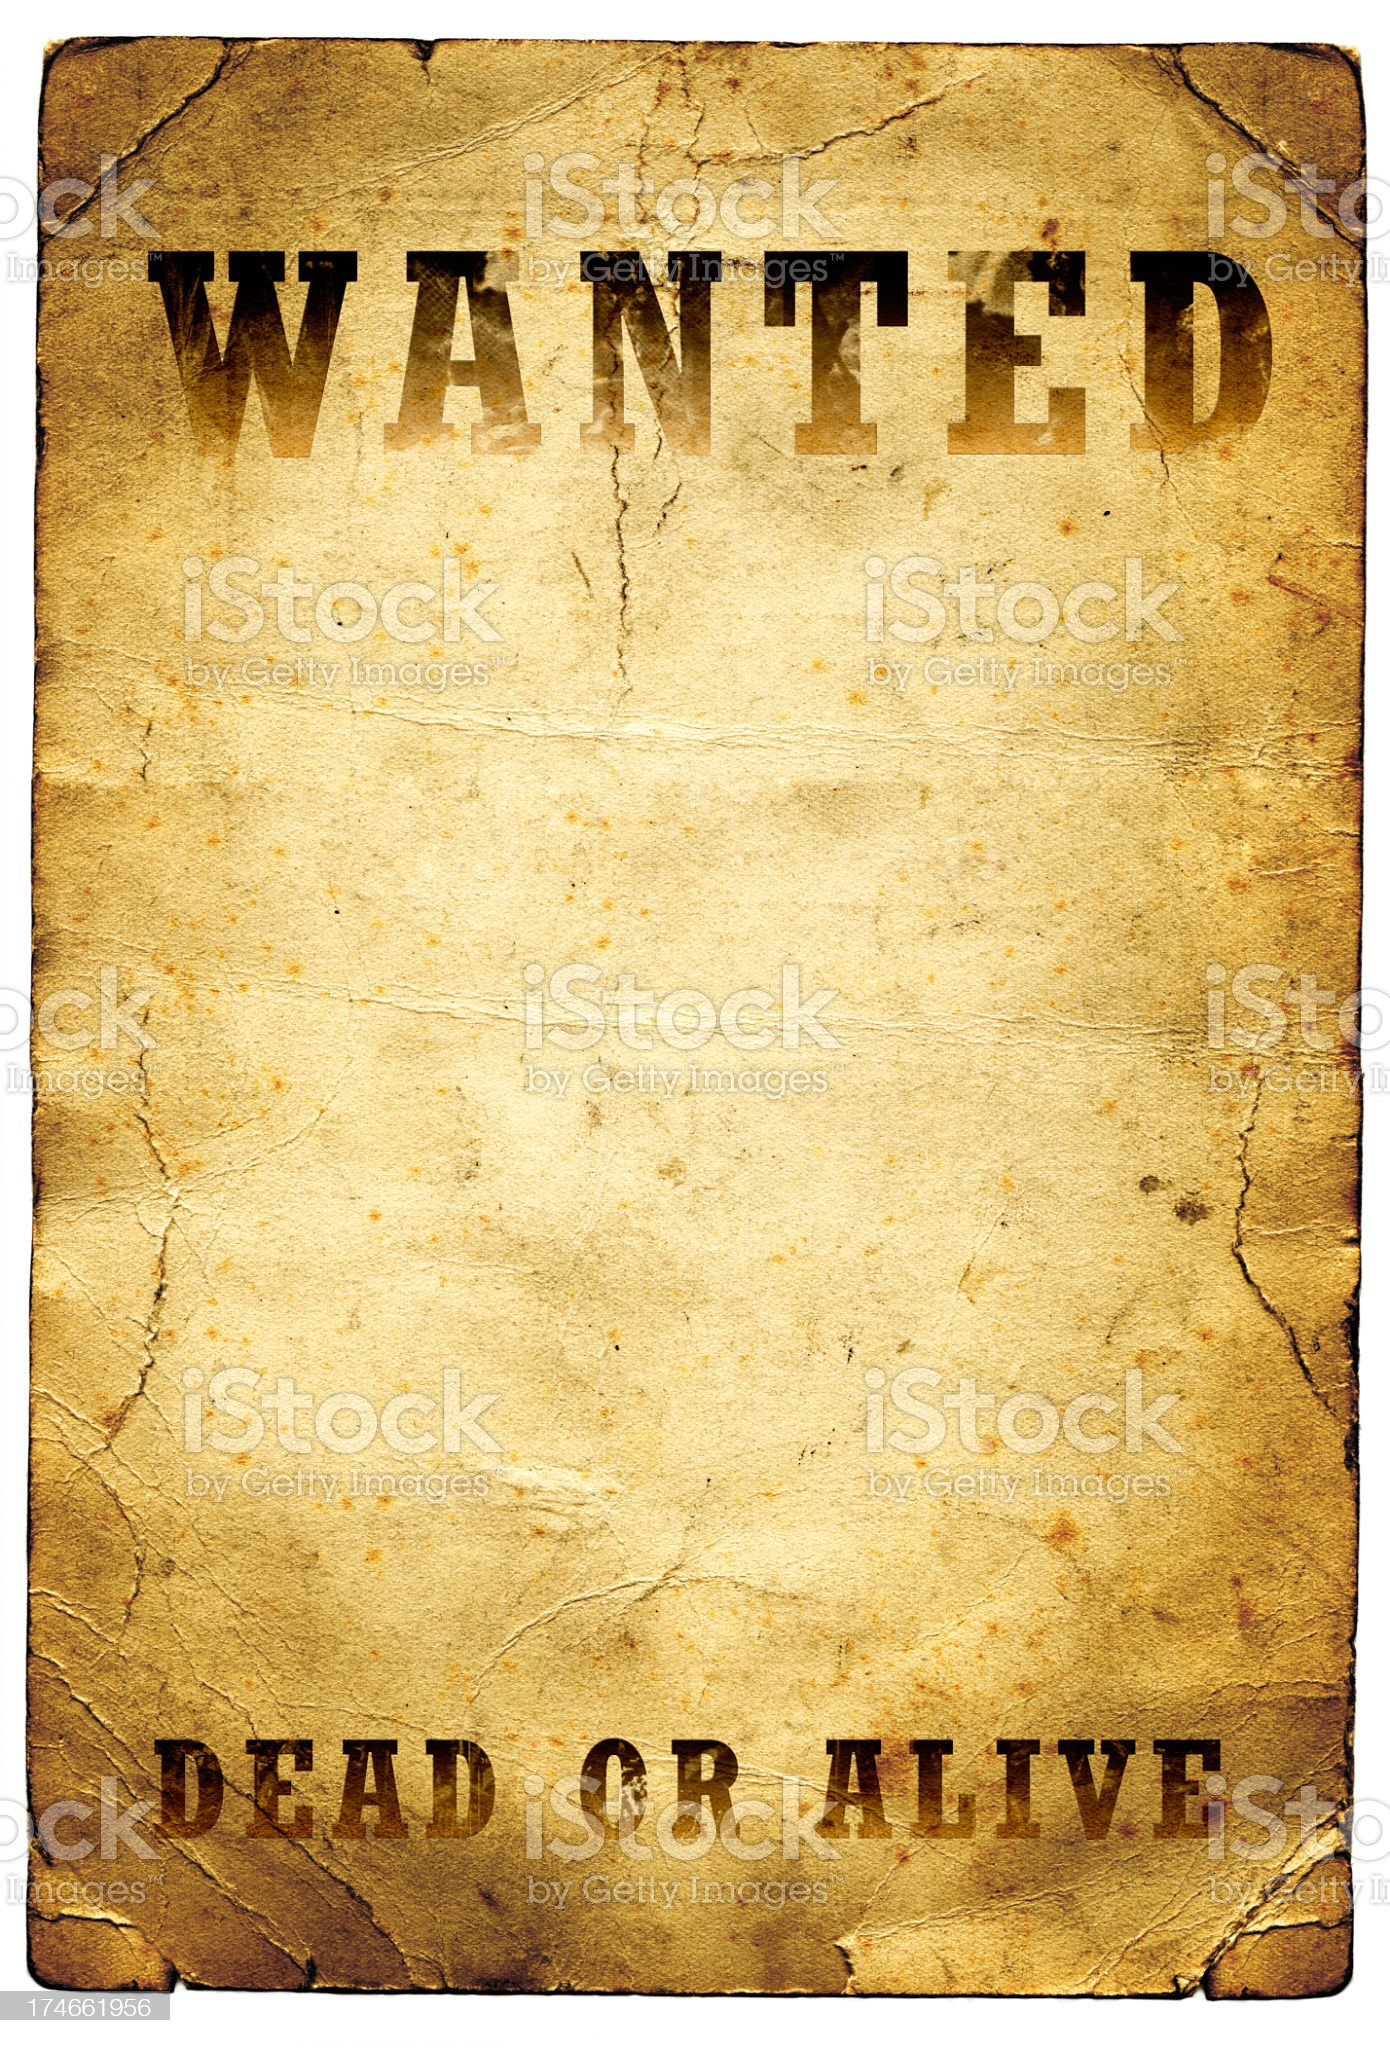 Wanted Dead or Alive Poster Wild West royalty-free stock photo